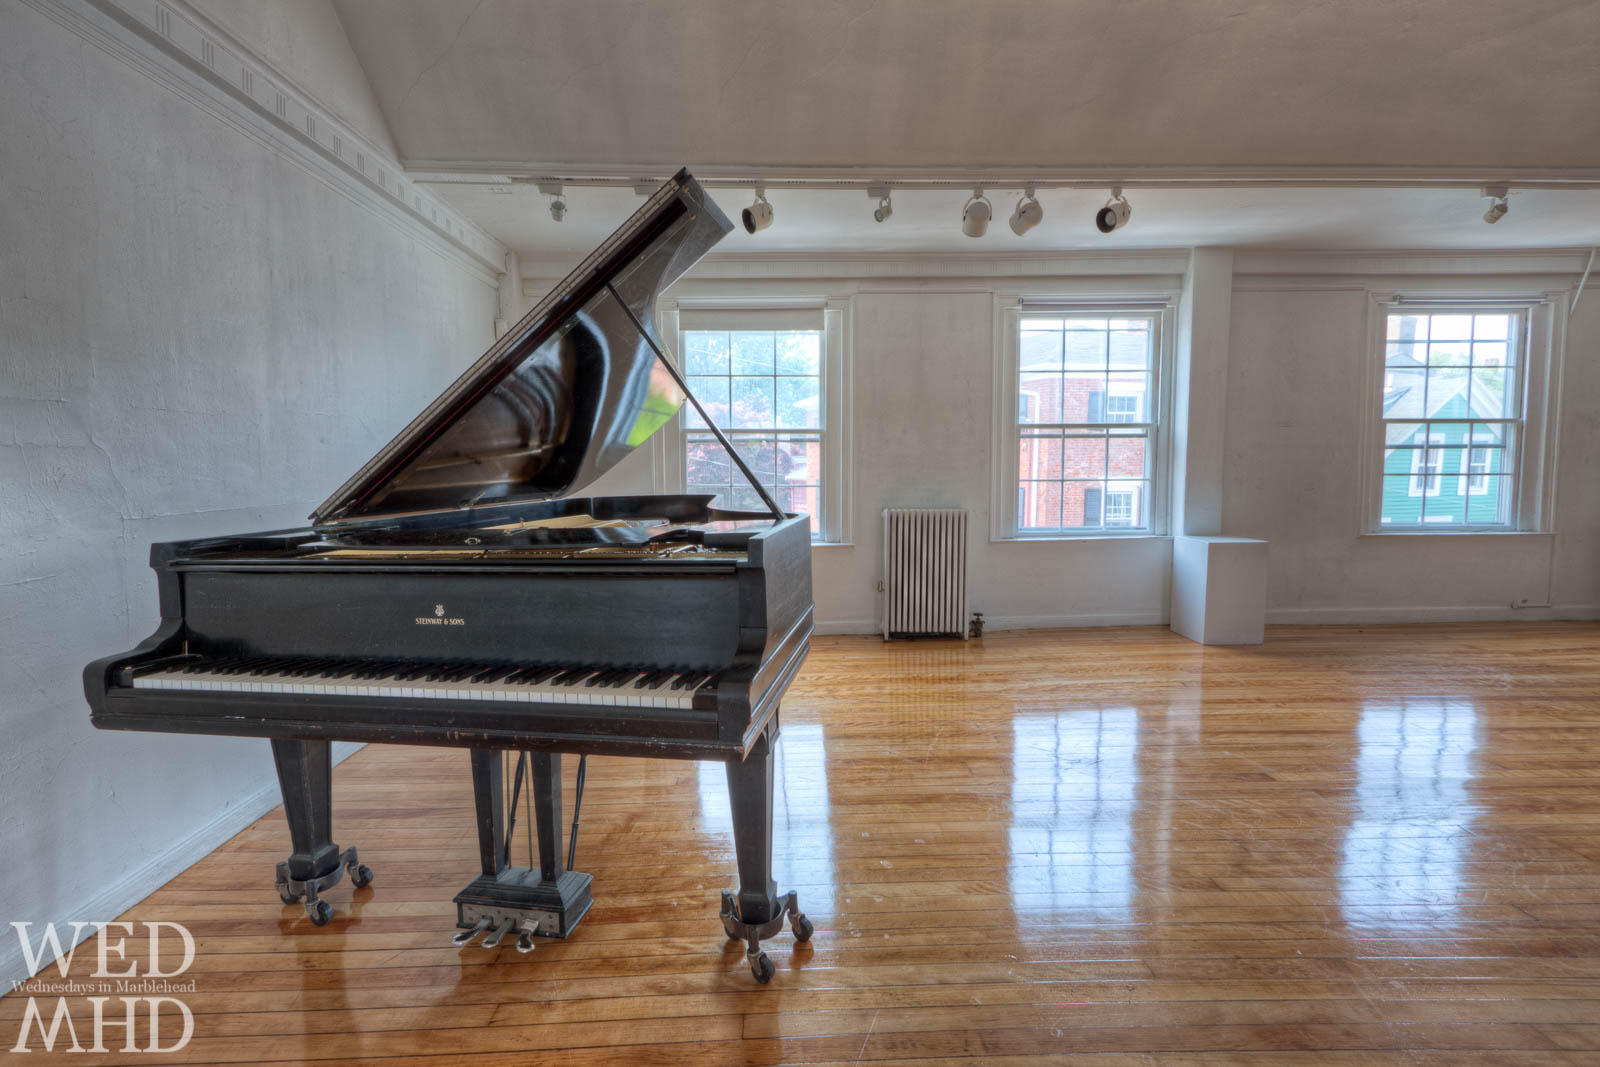 The Steinway and the Mansion